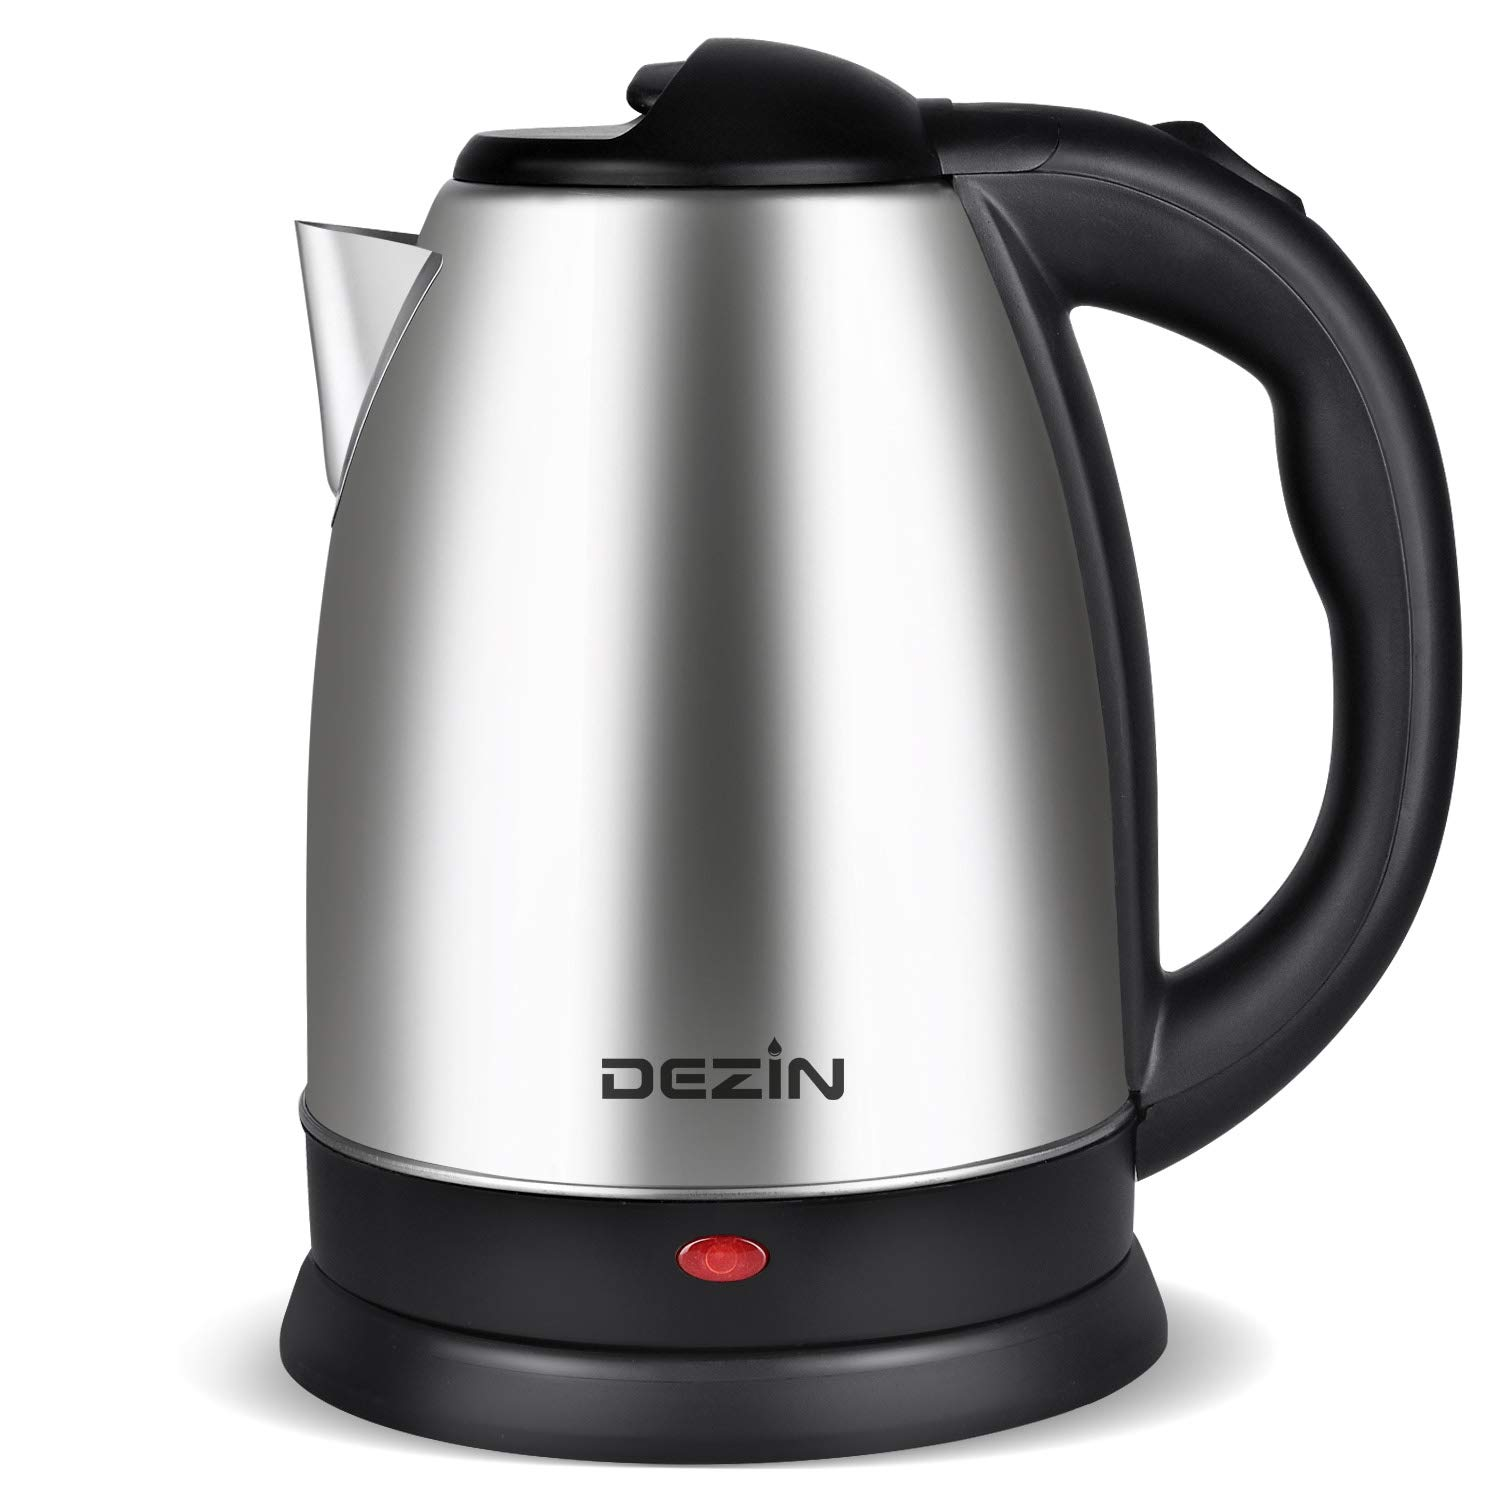 Dezin Electric Kettle Water Heater, 2L Stainless Steel Cordless Tea Kettle, Fast Boil, Auto Shut Off and Boil Dry Protection Tech - Base on SIDE Concept (Simple, Inexpensive, Dependable and Effective)